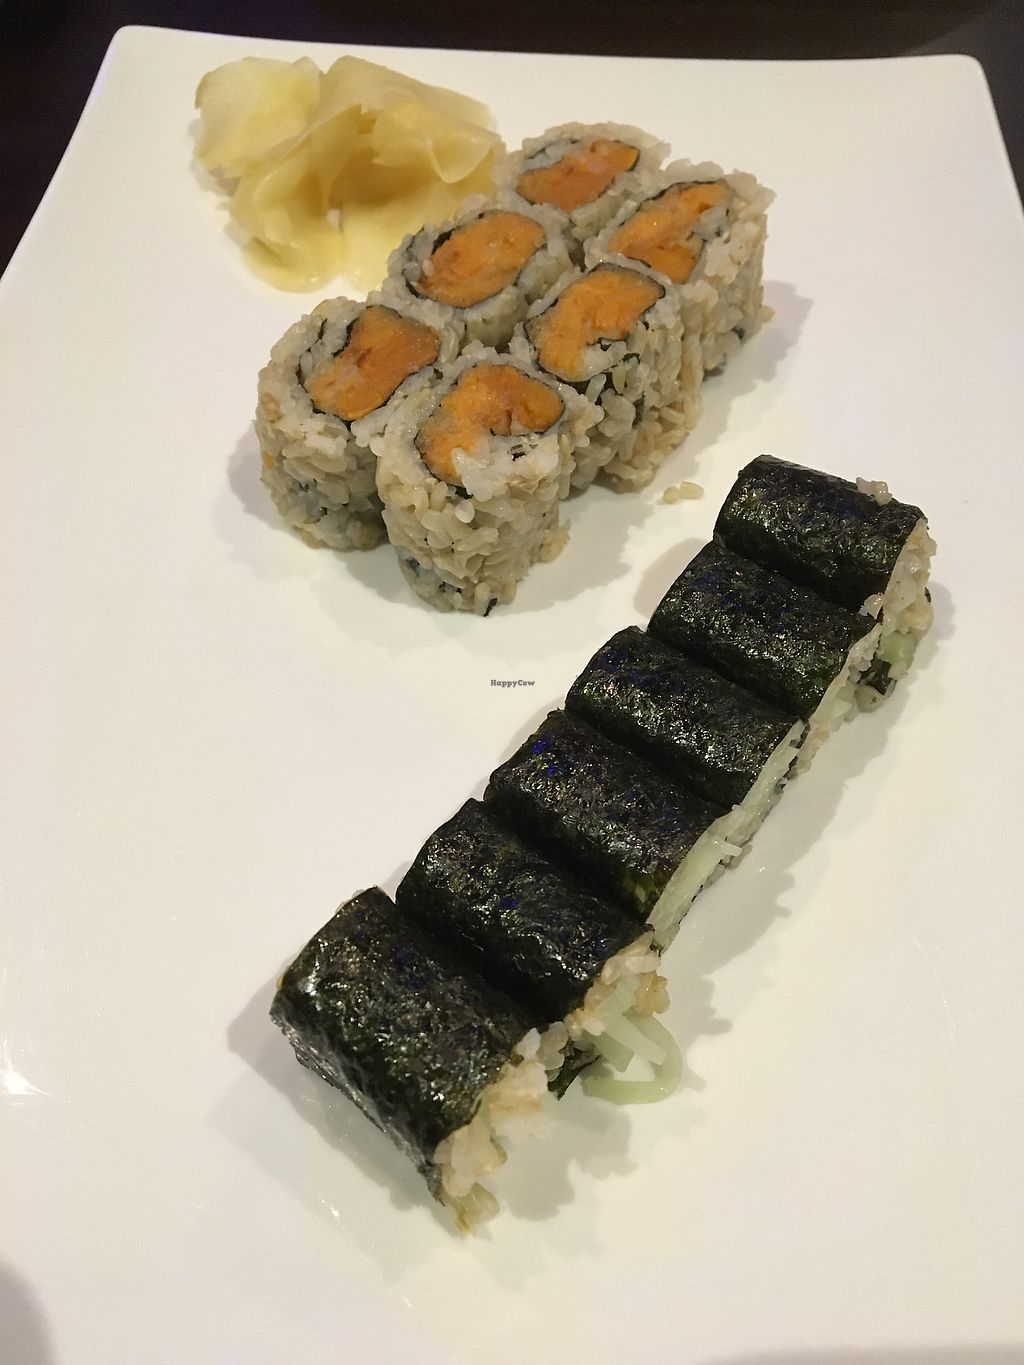 """Photo of Okinii Japanese Restaurant  by <a href=""""/members/profile/JJones315"""">JJones315</a> <br/>veggie Rolls <br/> April 20, 2018  - <a href='/contact/abuse/image/97972/388787'>Report</a>"""